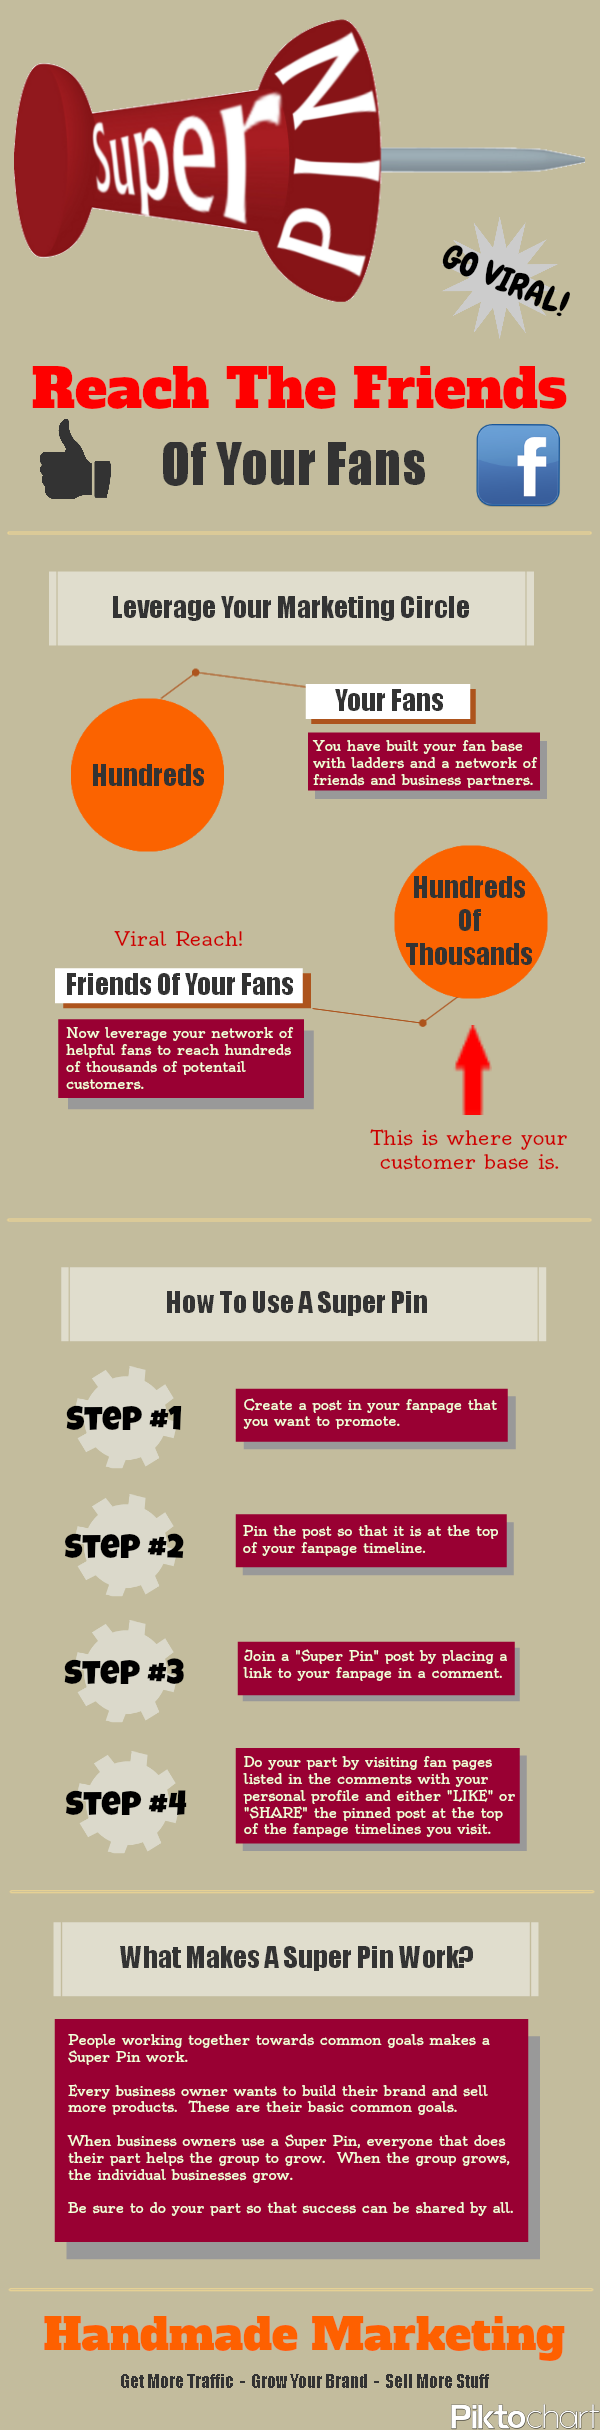 superpin infographic Super Pin Infographic Shows How To Leverage Facebook Fans